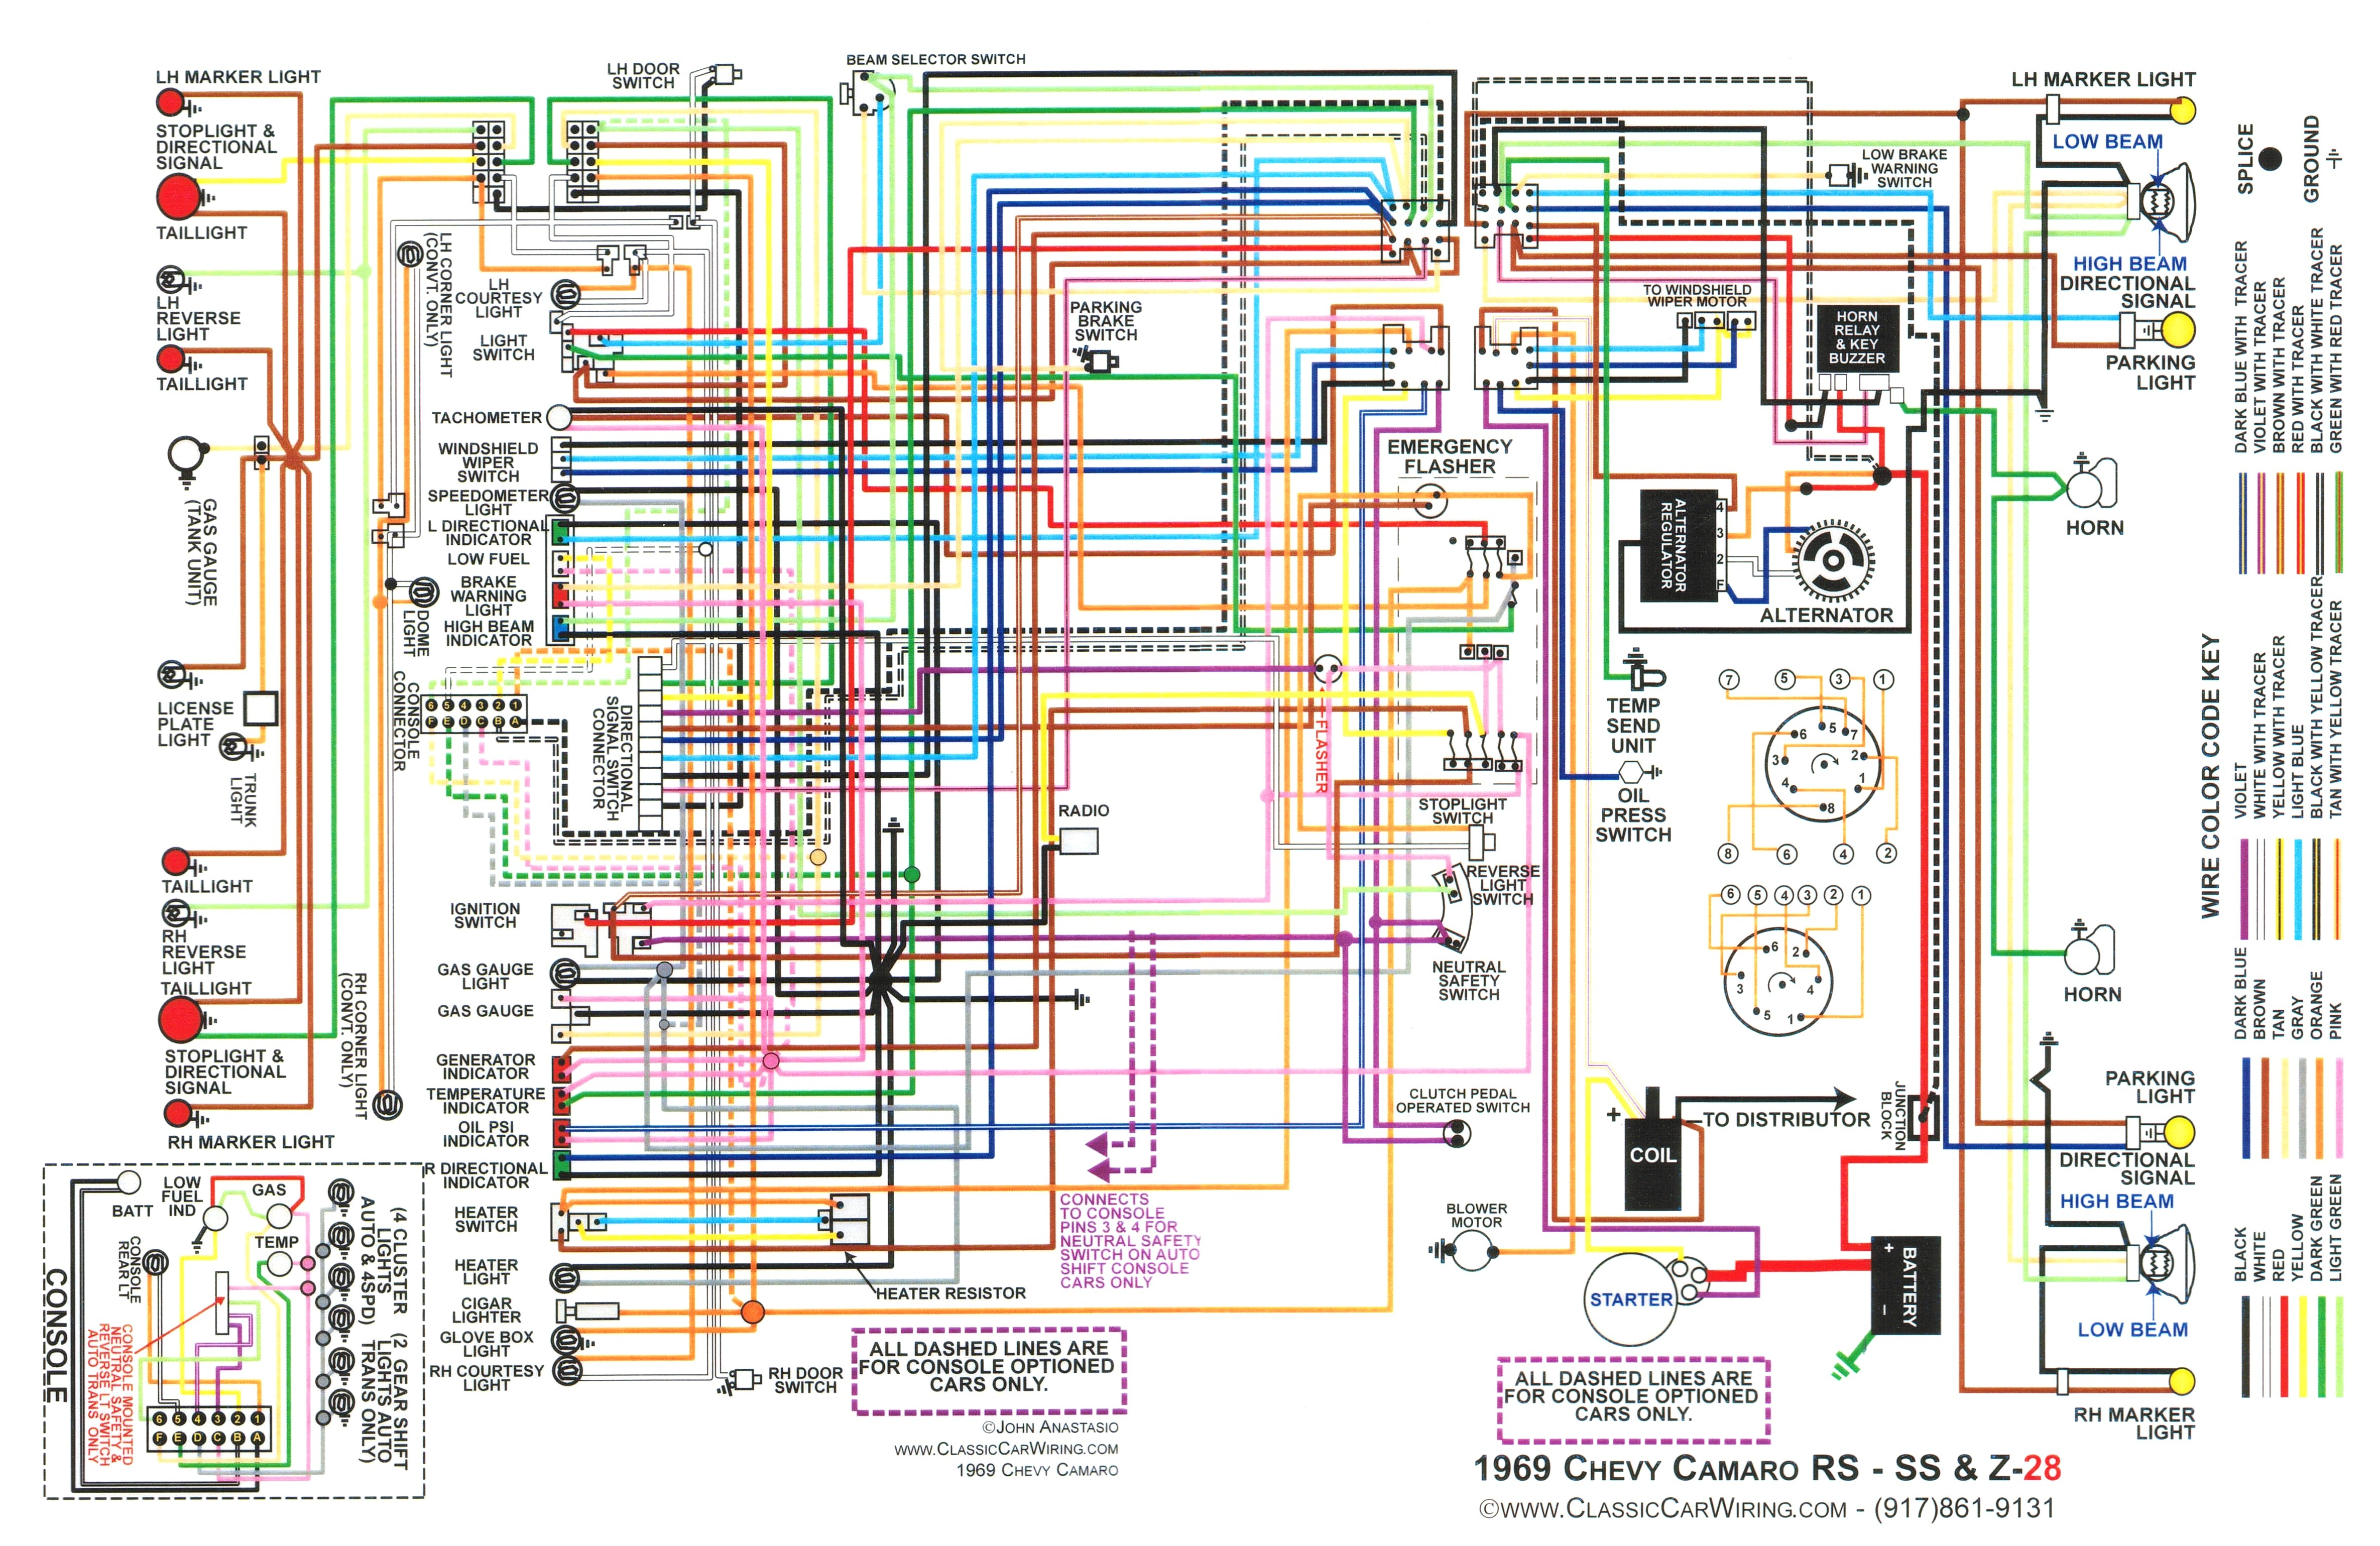 finn wiring diagrams wiring diagram04 dodge stratus wiring diagram live  data wiring diagram04 dodge stratus wiring